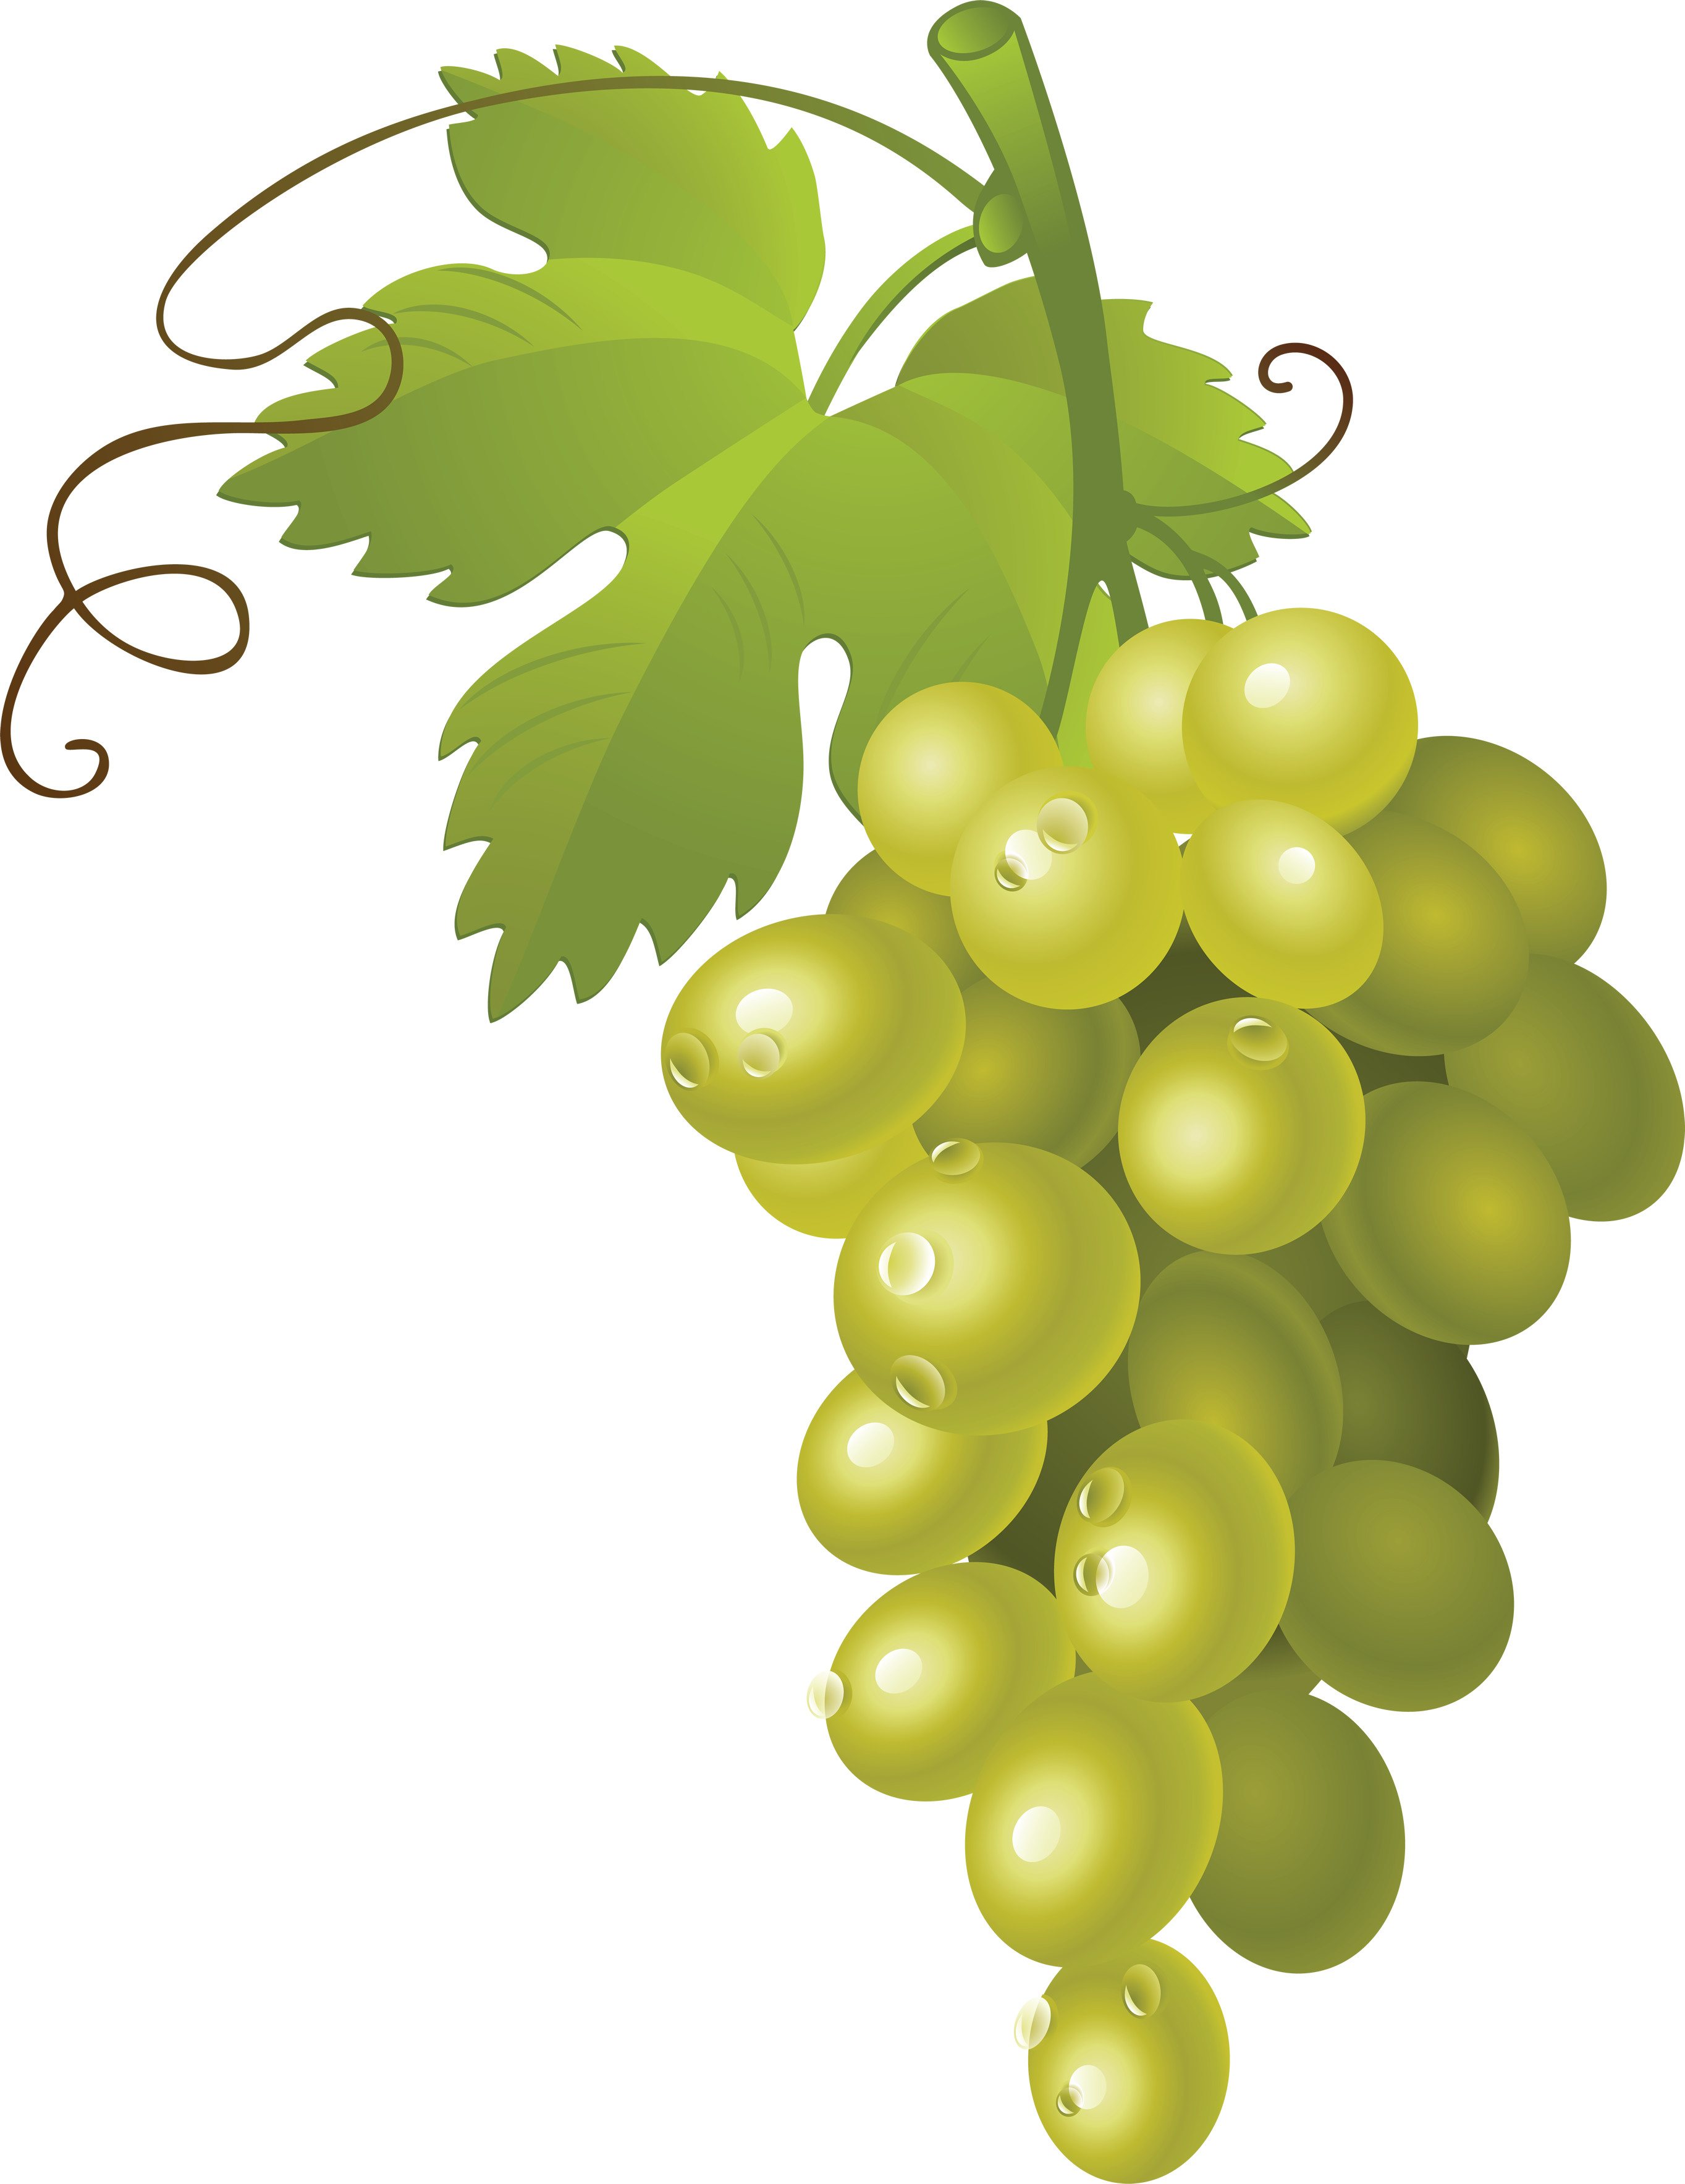 Grapes clipart bread. Png image purepng free